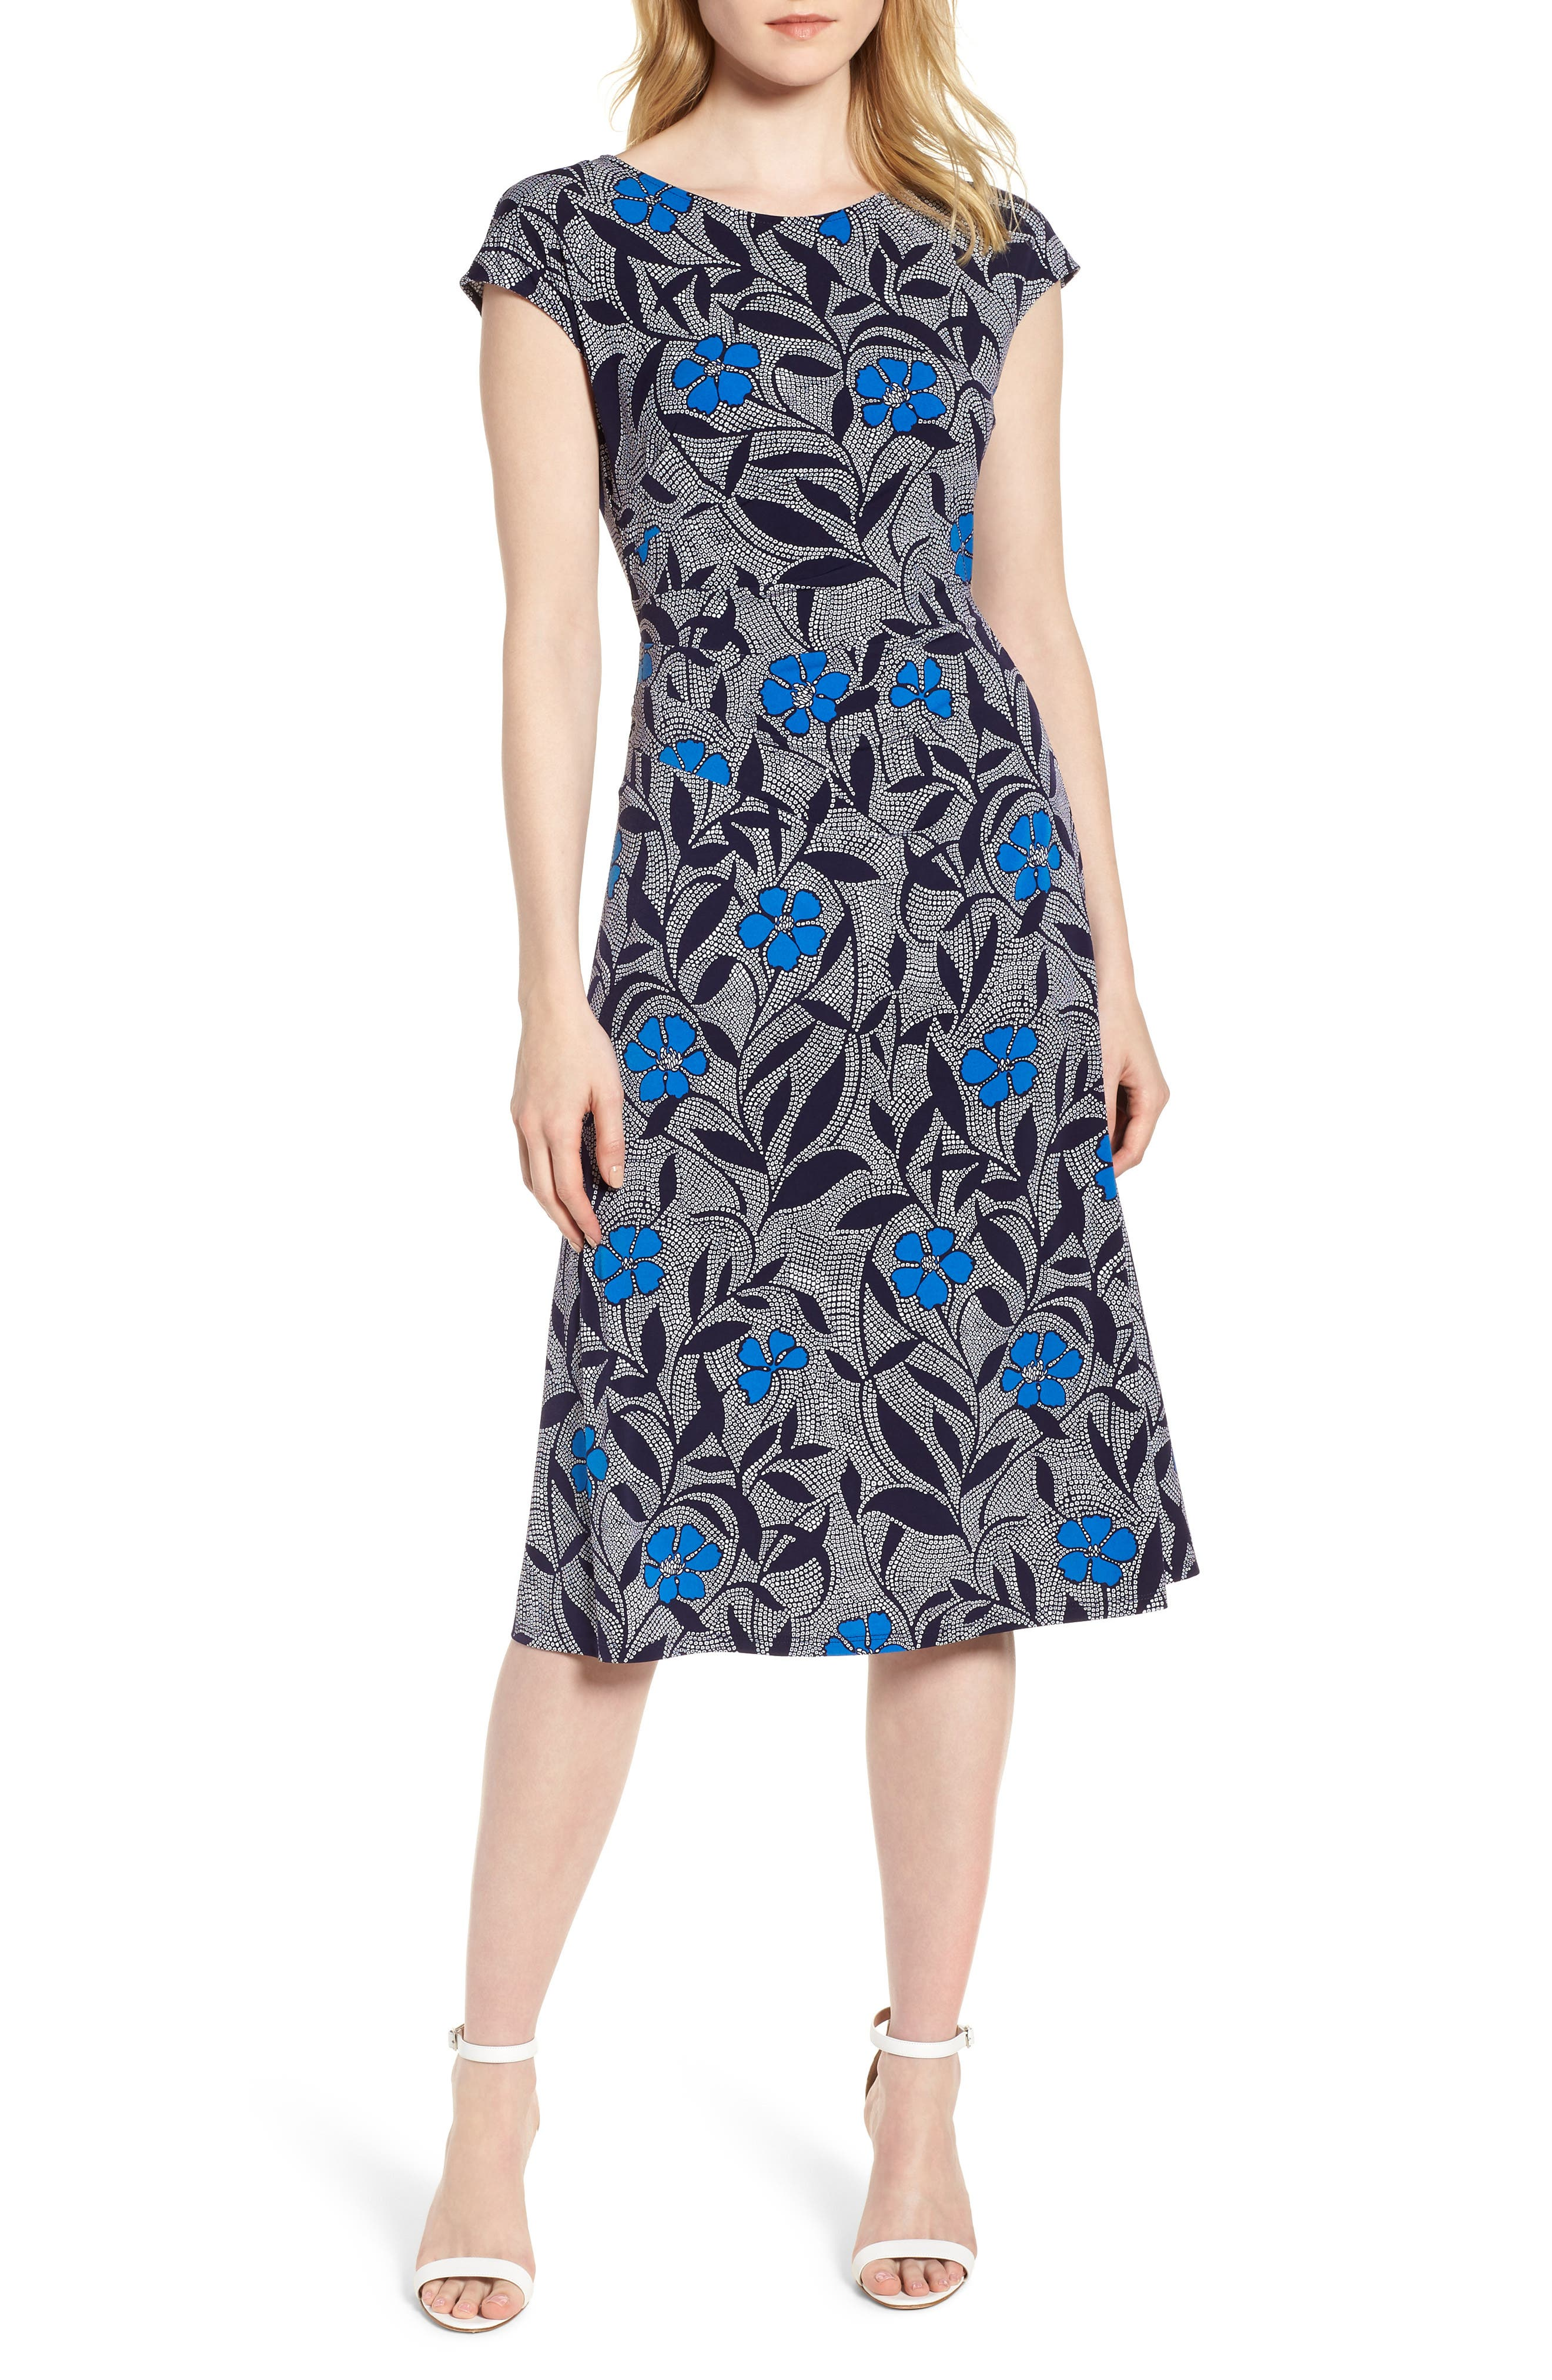 Pacific Blooms Stretch Jersey Ruched Dress,                         Main,                         color,